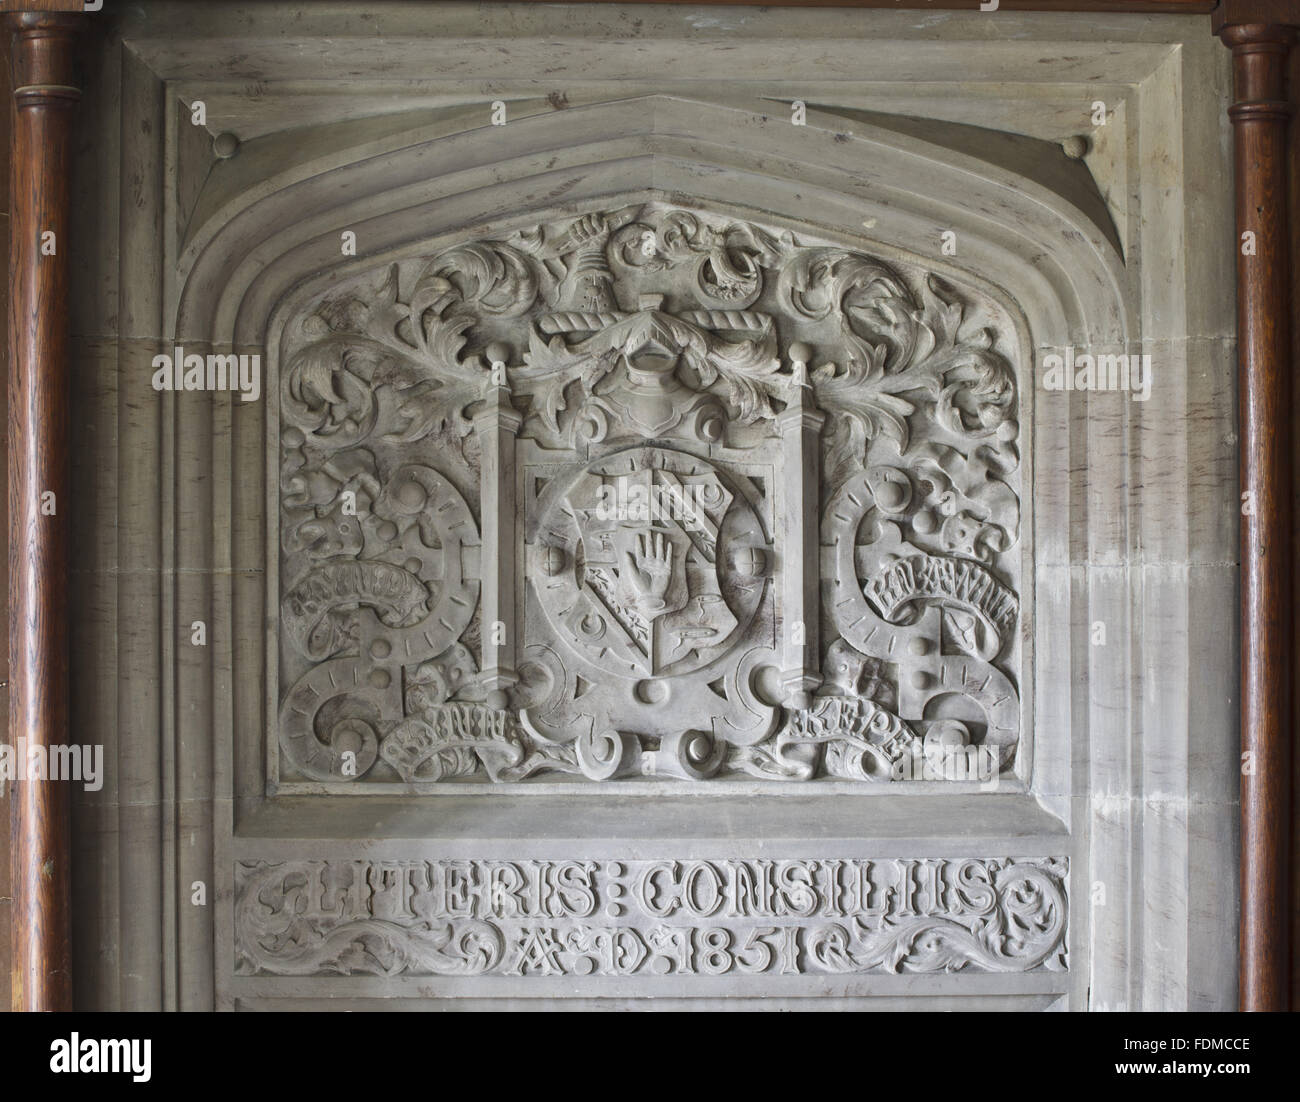 The carved arms (Kay-Shuttleworth?) by Sir Charles Barry, dated 1851, above the door in the Library at Gawthorpe - Stock Image